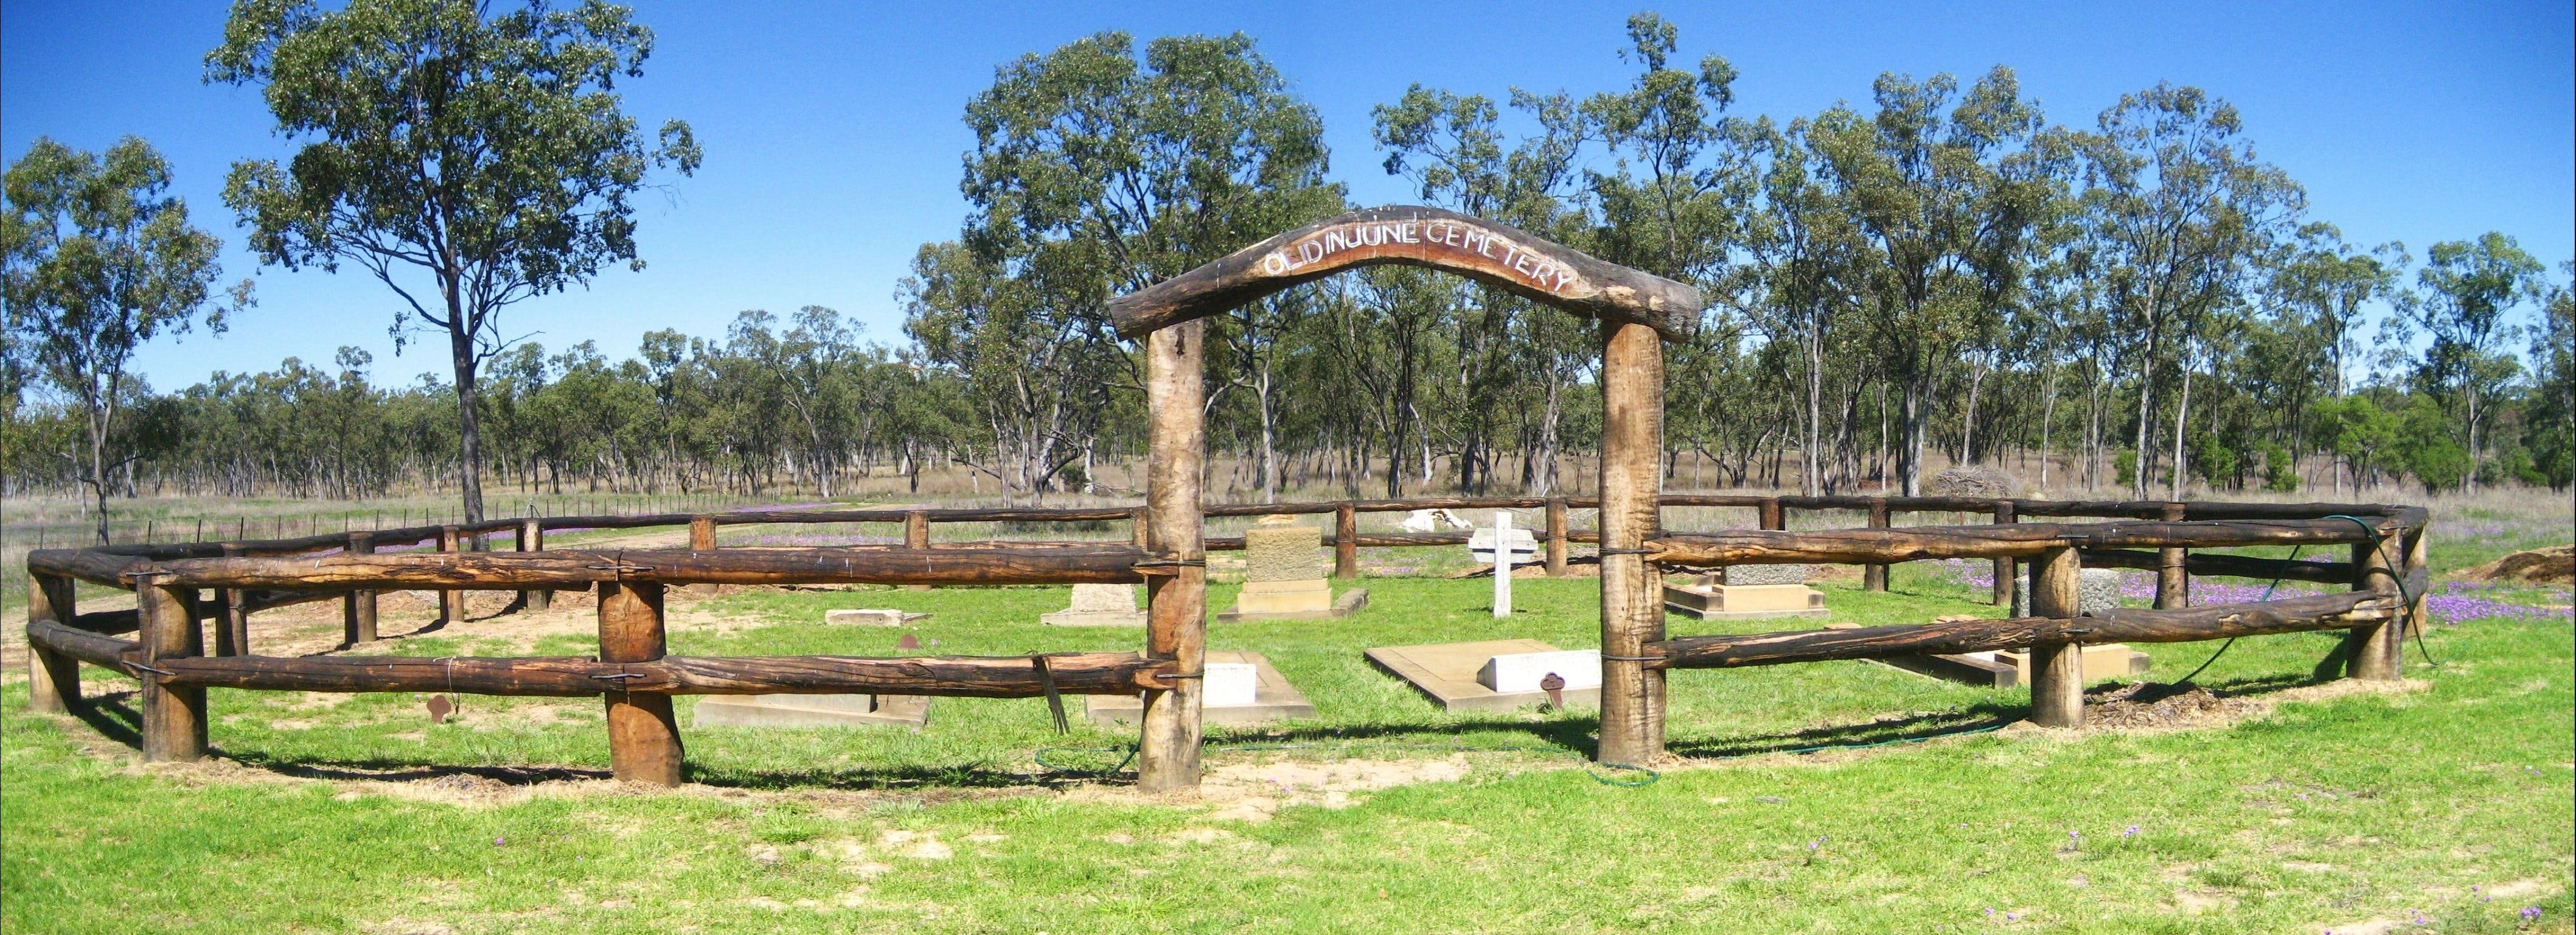 Old Injune Cemetery - Accommodation Search